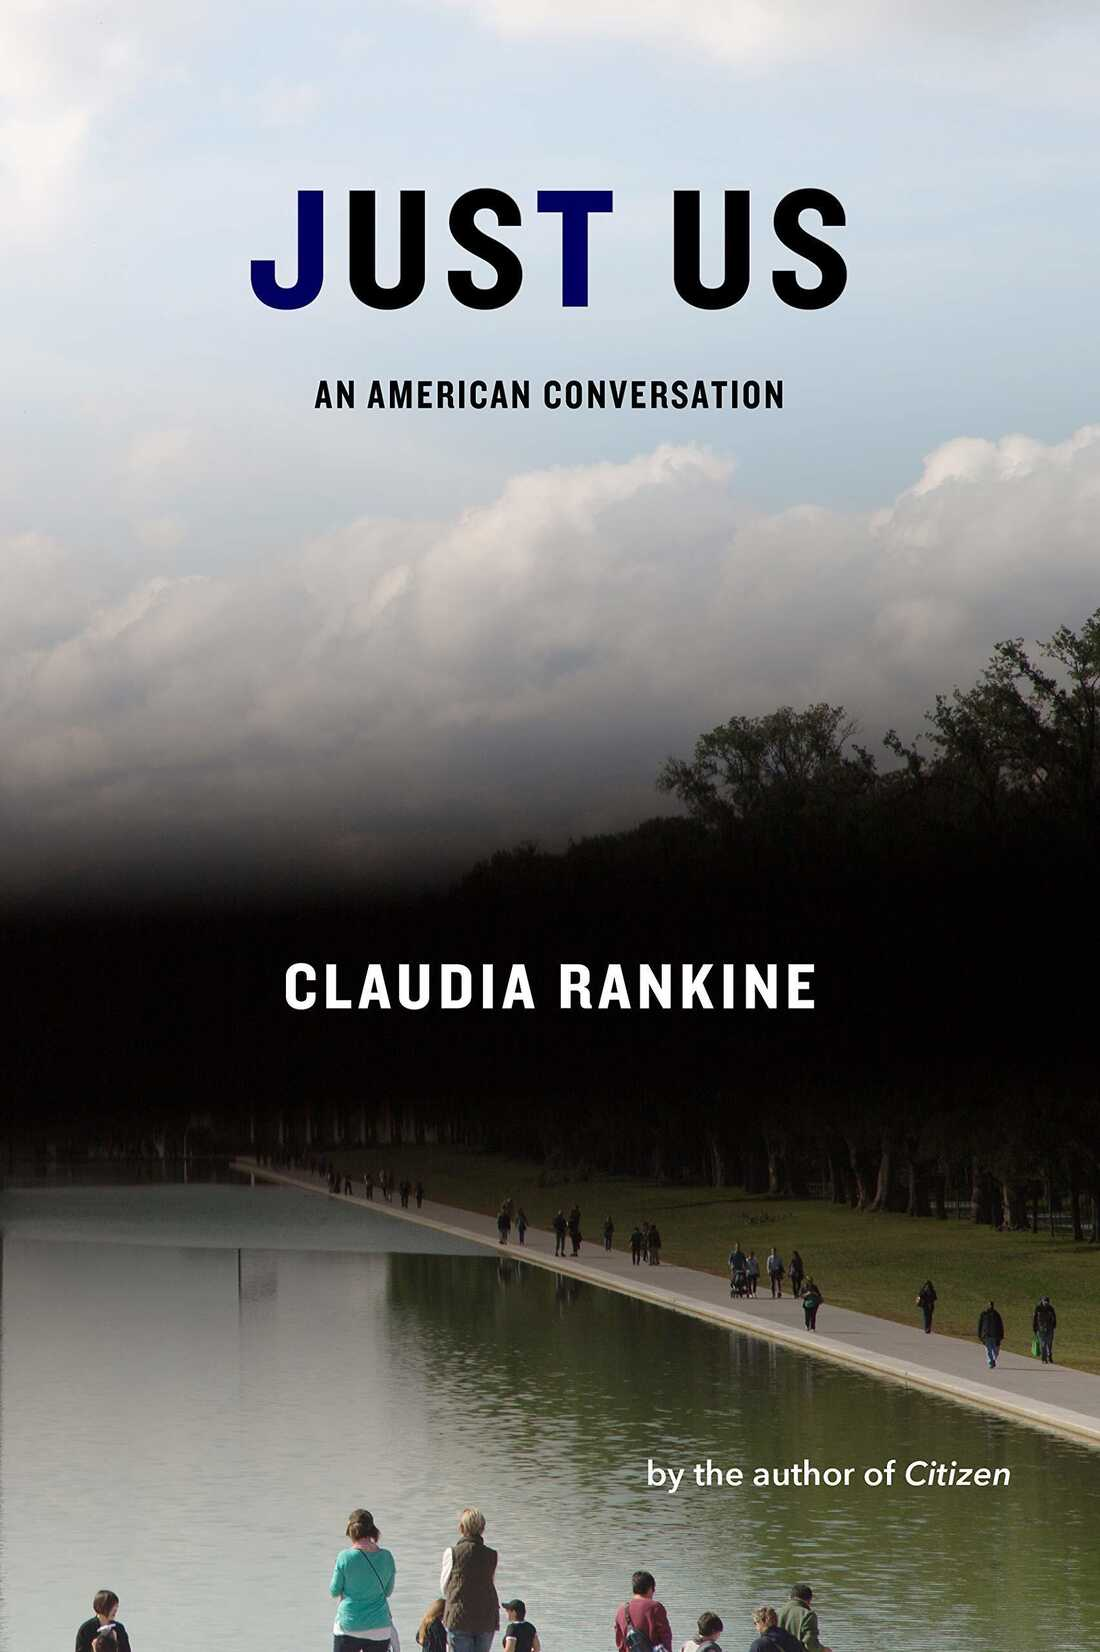 Just Us, by Claudia Rankine